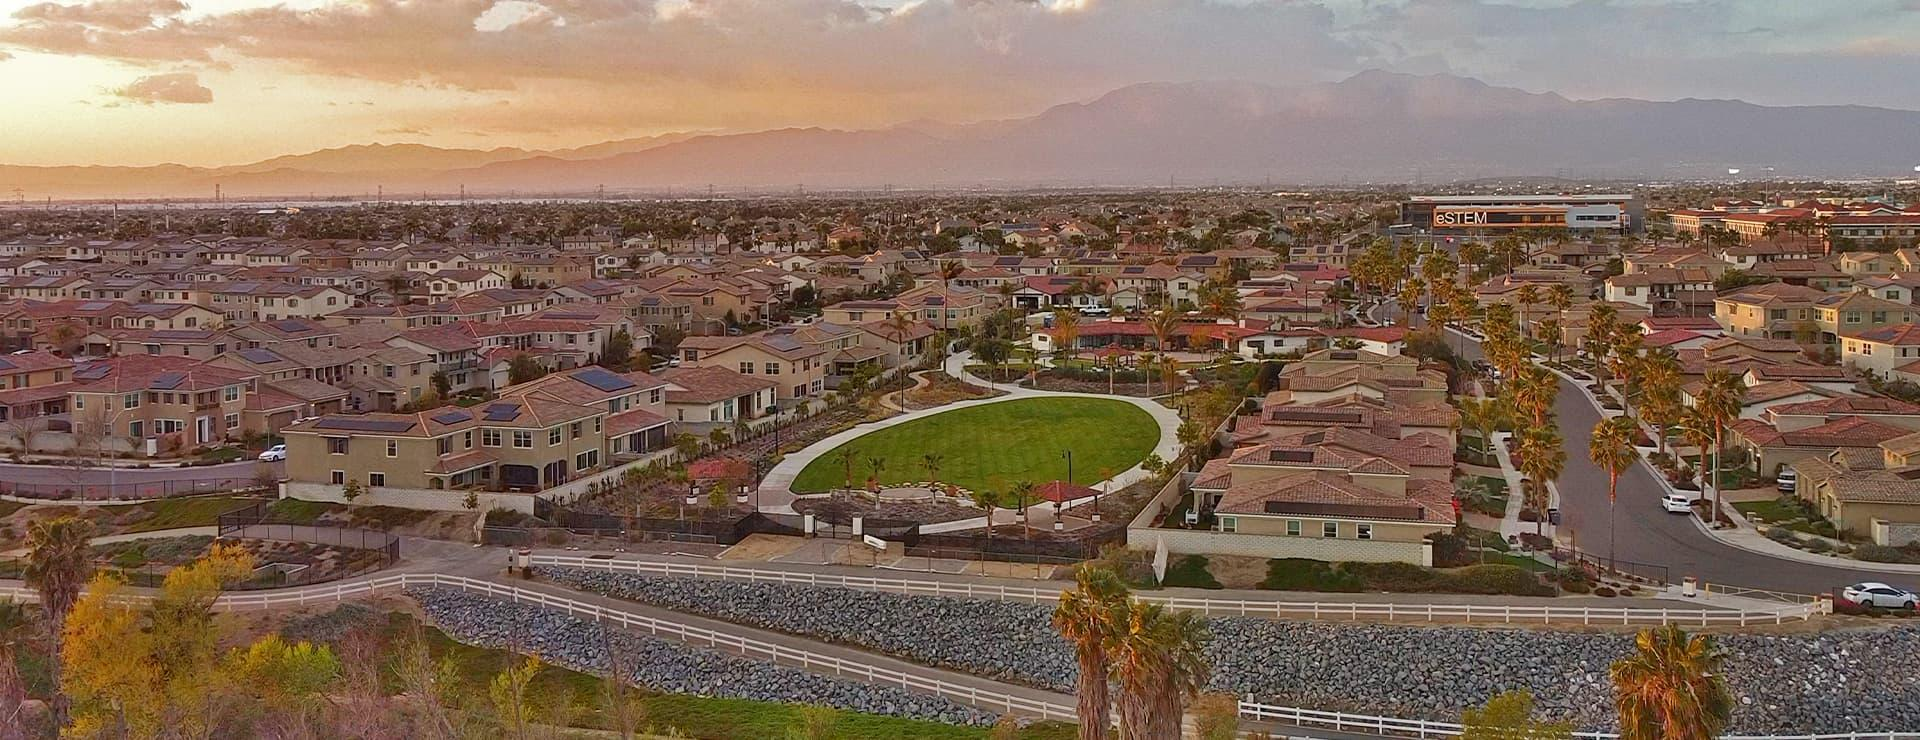 Aerial View of City of Eastvale California